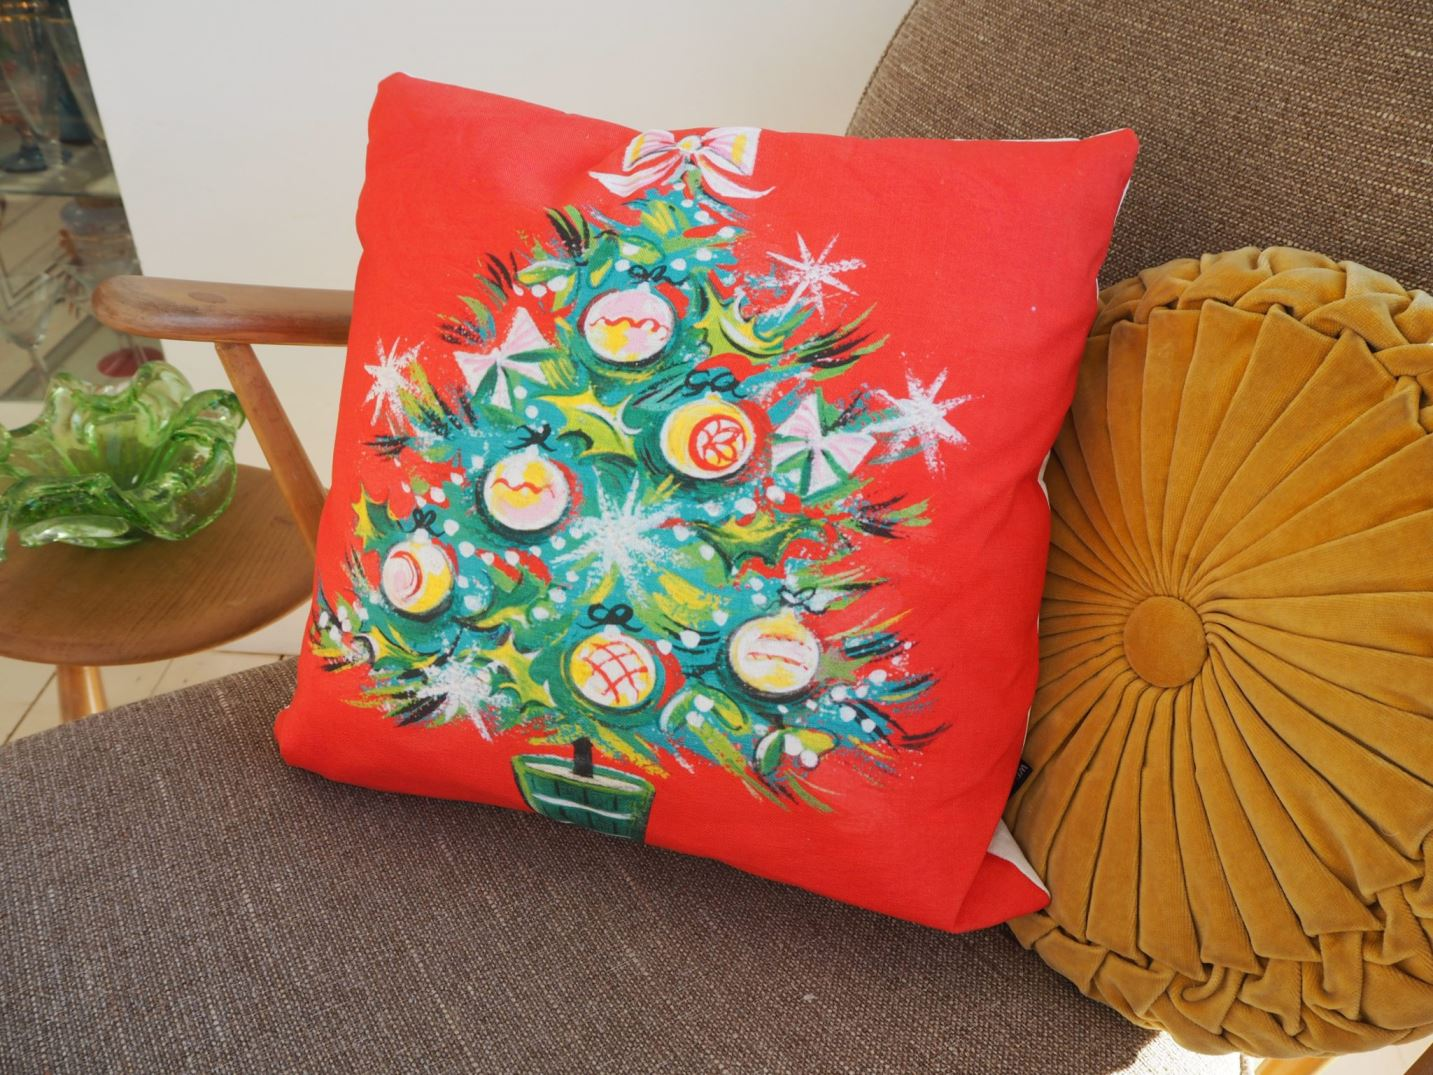 Vintage style Christmas cushions